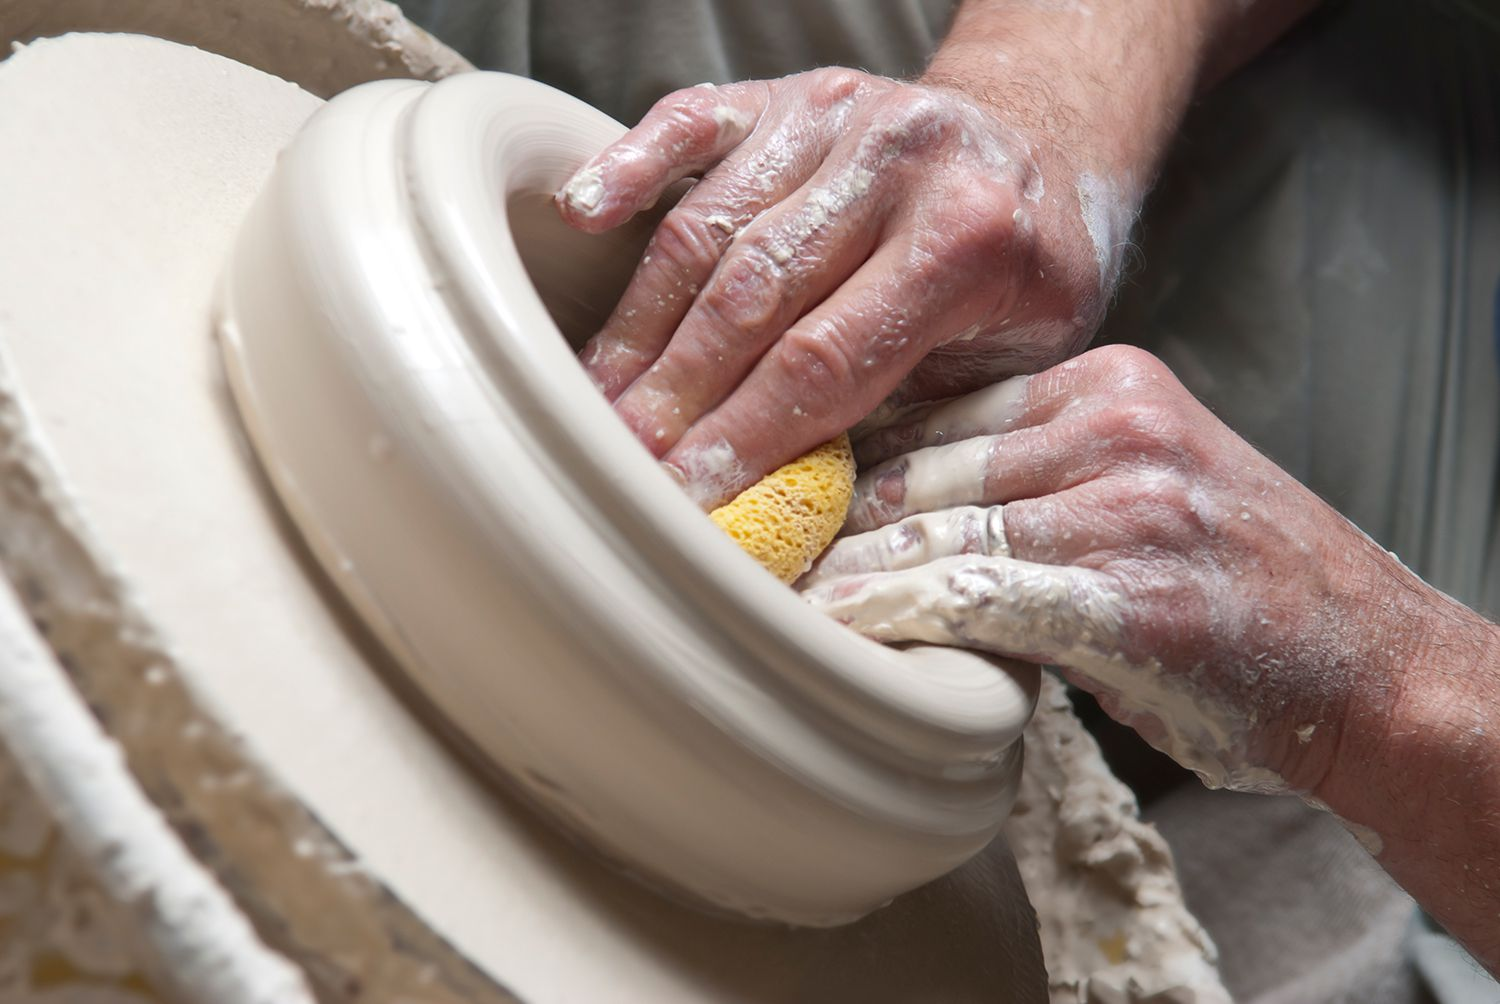 Potter uses sponge to shape bowl on pottery wheel.